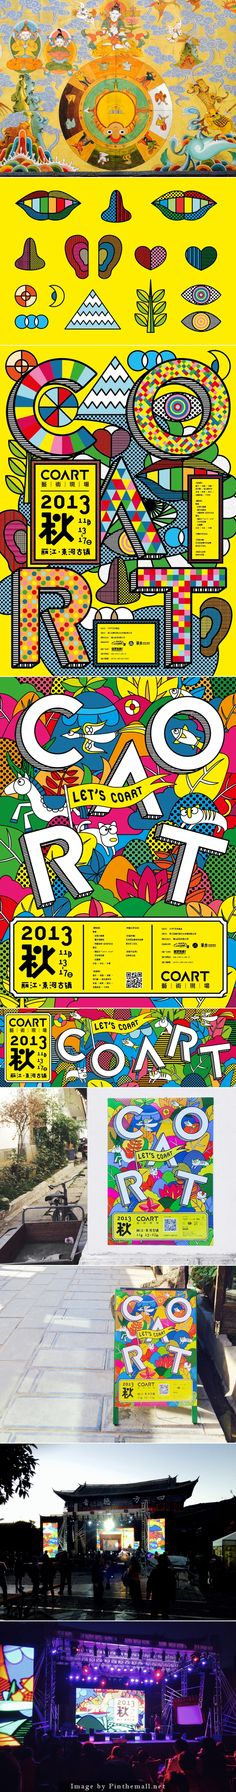 Project By Fever Chu 朱安邦 Hong Kong, Hong Kong Message Creative Share Project About Project COART music and art festival Published: April 22,...